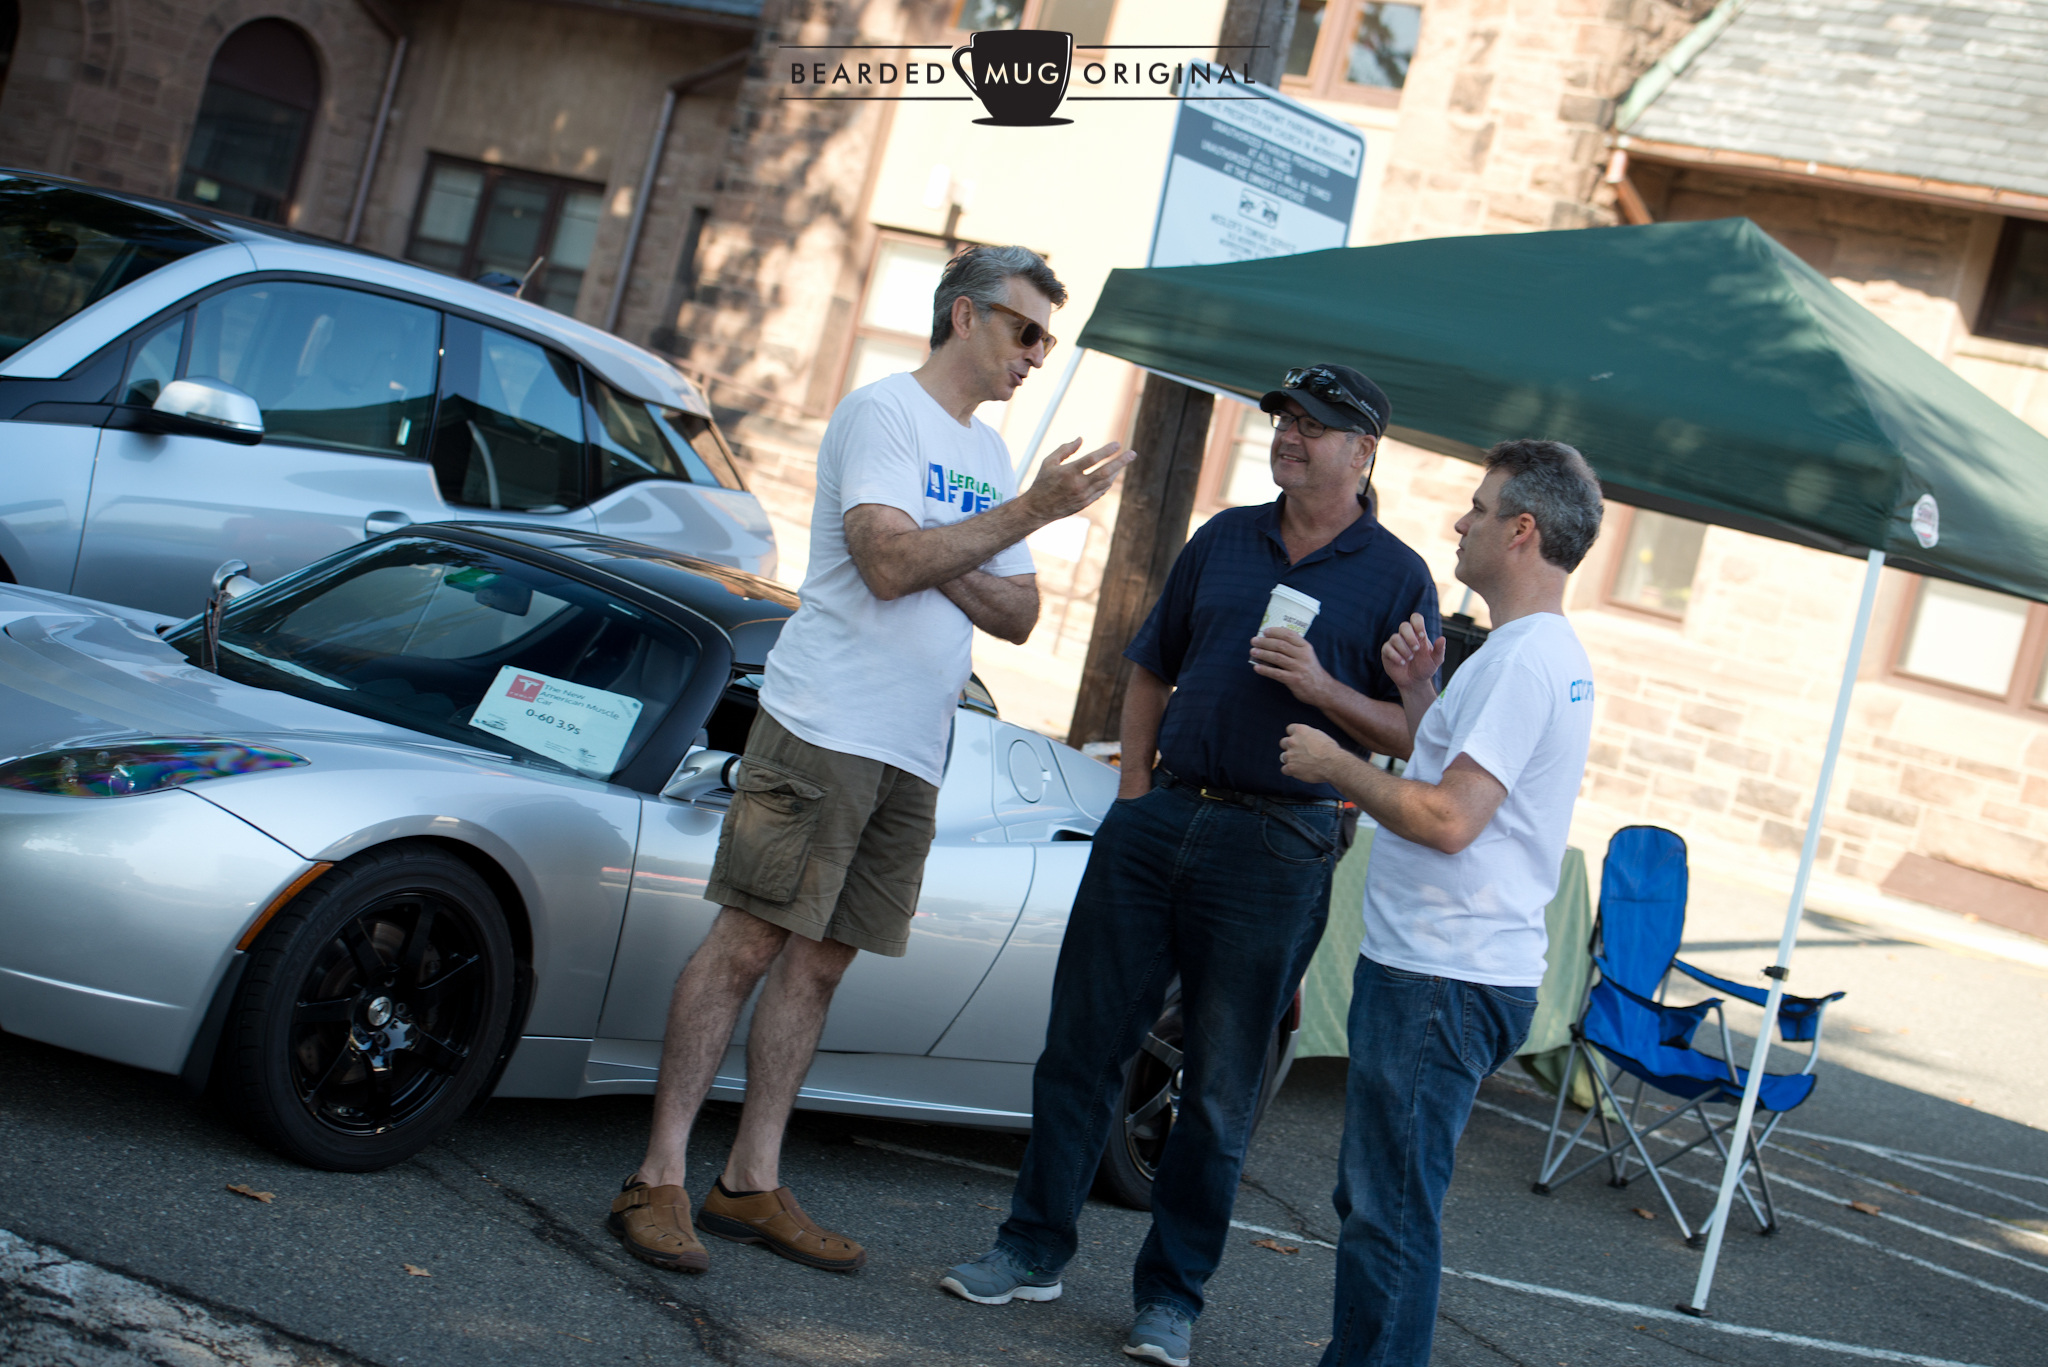 Main organizer Chris Neff (l.) and Paul Miller, president of Sustainable Morristown (r.) discuss the installation of public chargers in town with Morristown's Mayor Tim Dougherty (c.)in front of a Tesla Roadster, the first car offered by the trailblazing marque.